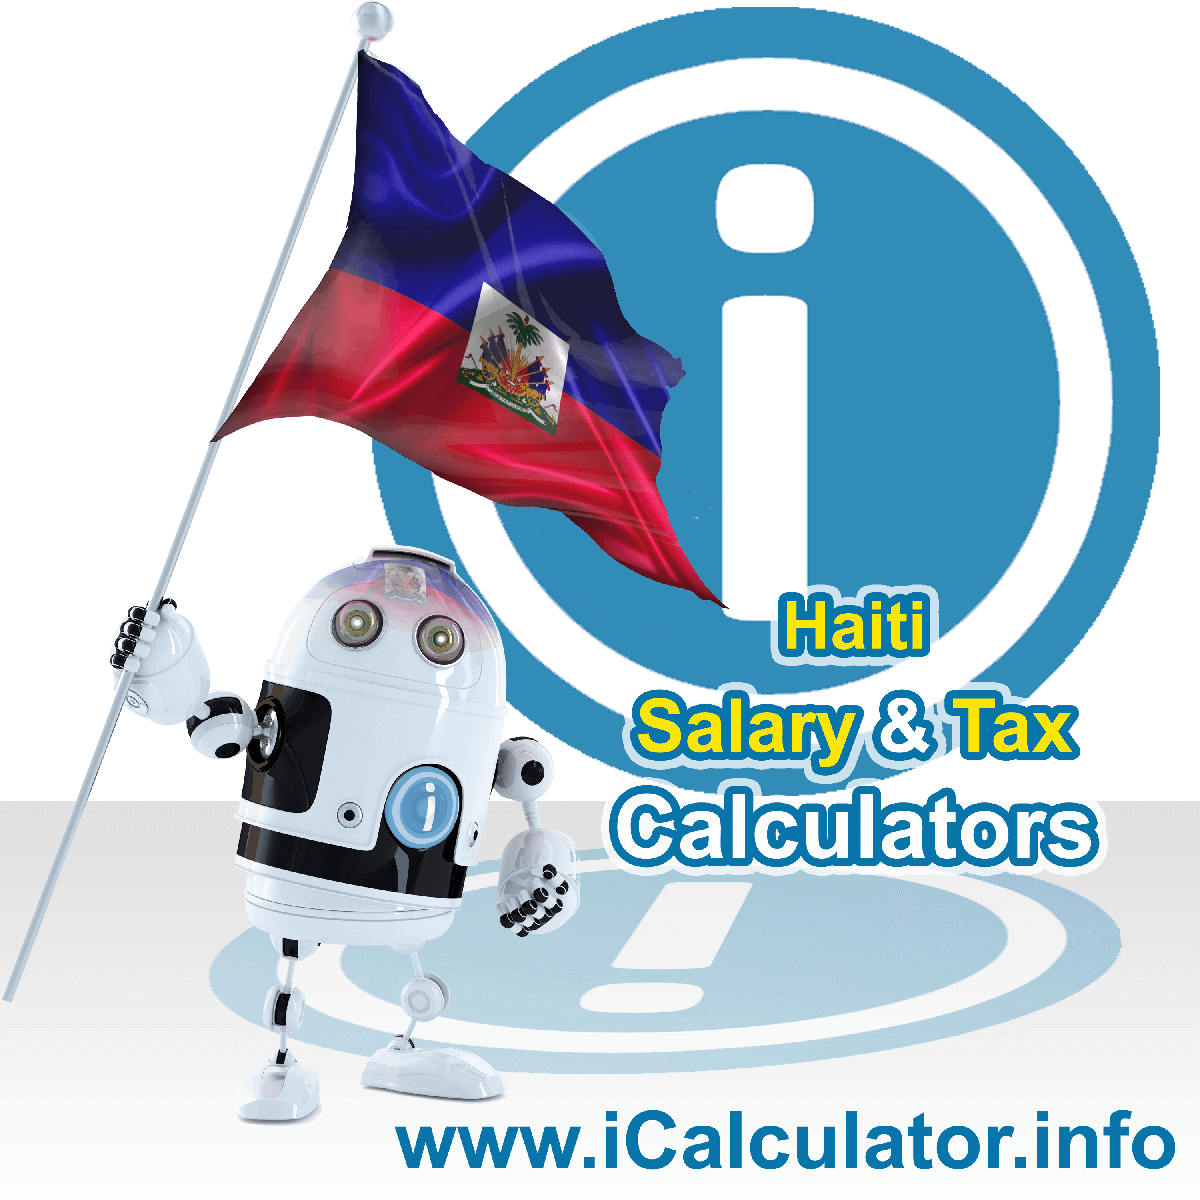 Haiti Wage Calculator. This image shows the Haiti flag and information relating to the tax formula for the Haiti Tax Calculator